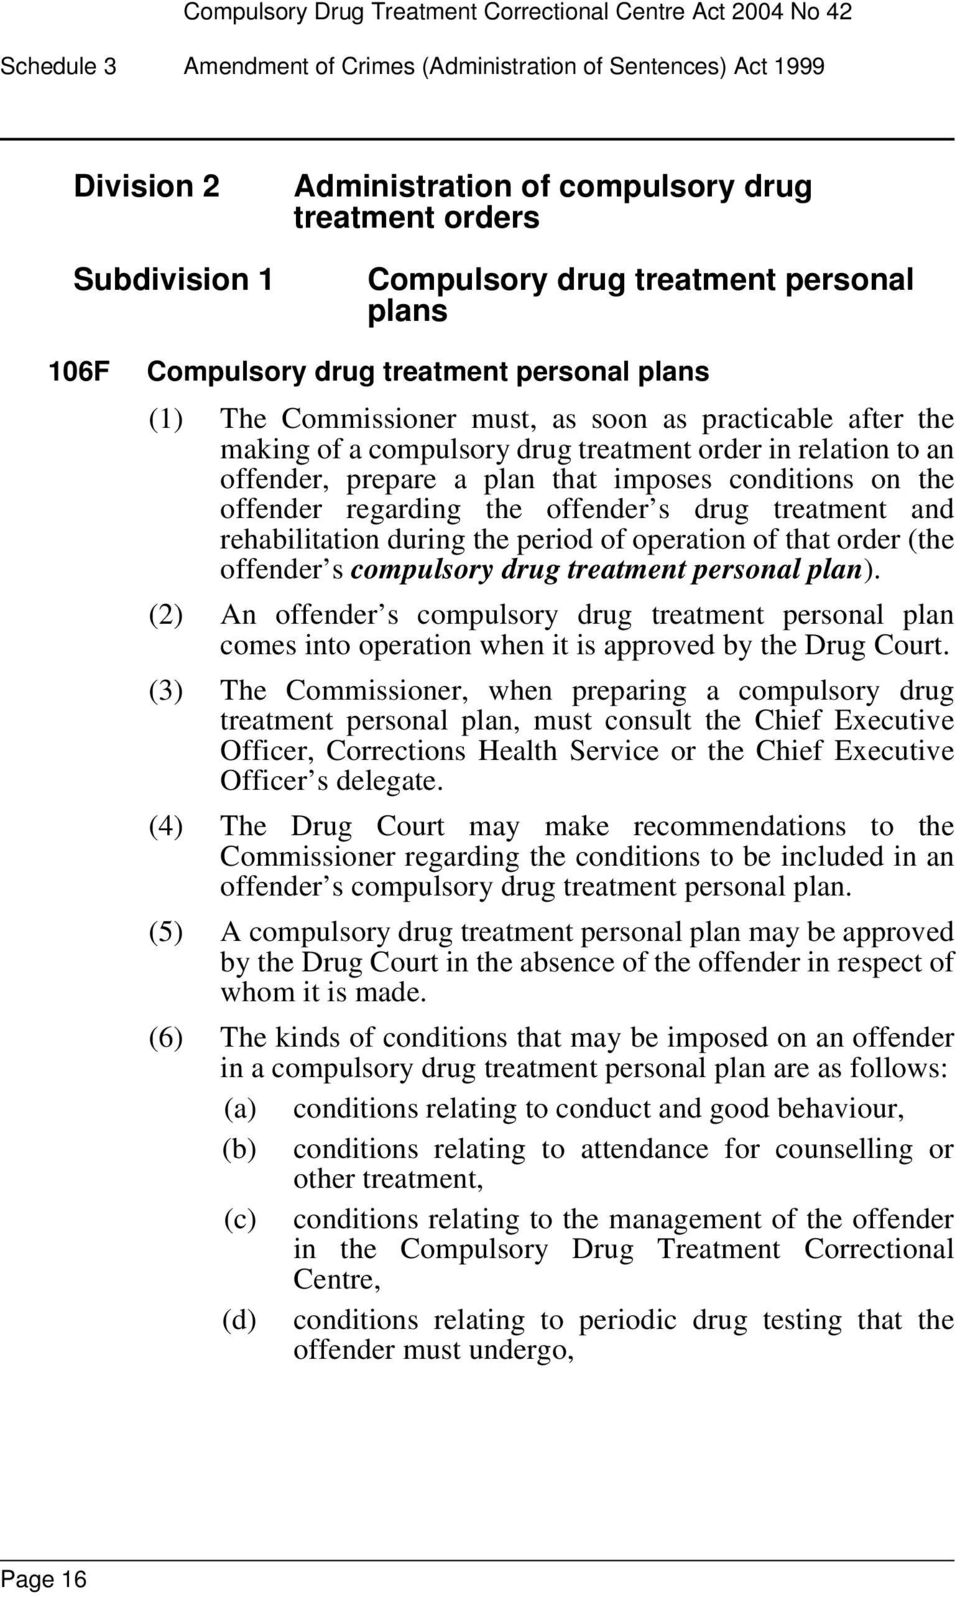 imposes conditions on the offender regarding the offender s drug treatment and rehabilitation during the period of operation of that order (the offender s compulsory drug treatment personal plan).